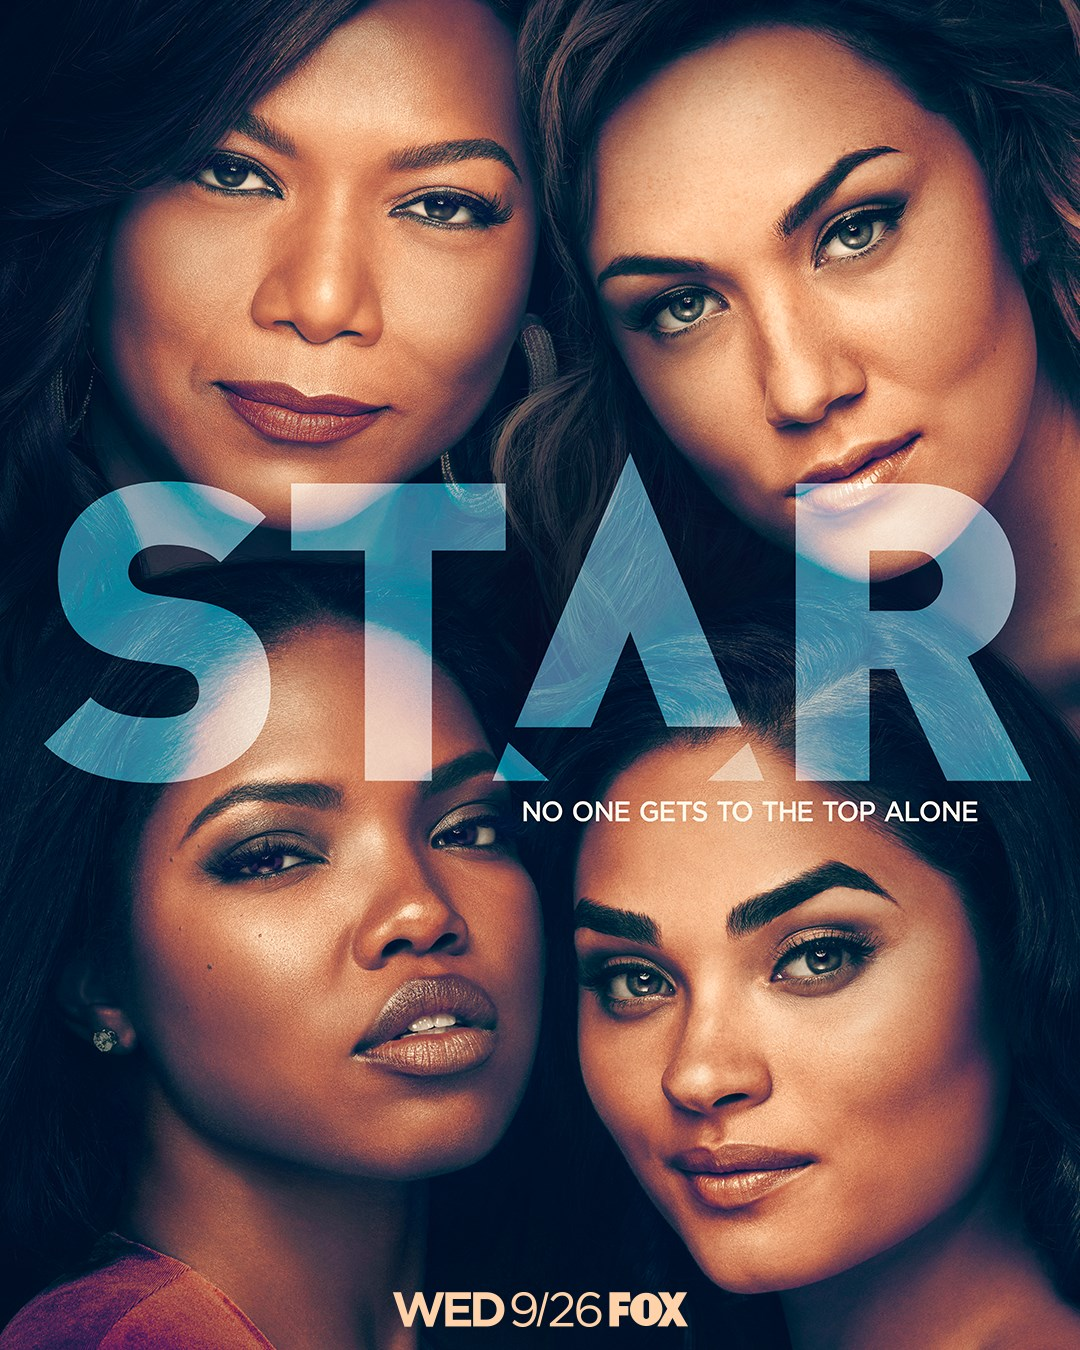 watch star season 2 episode 5 free